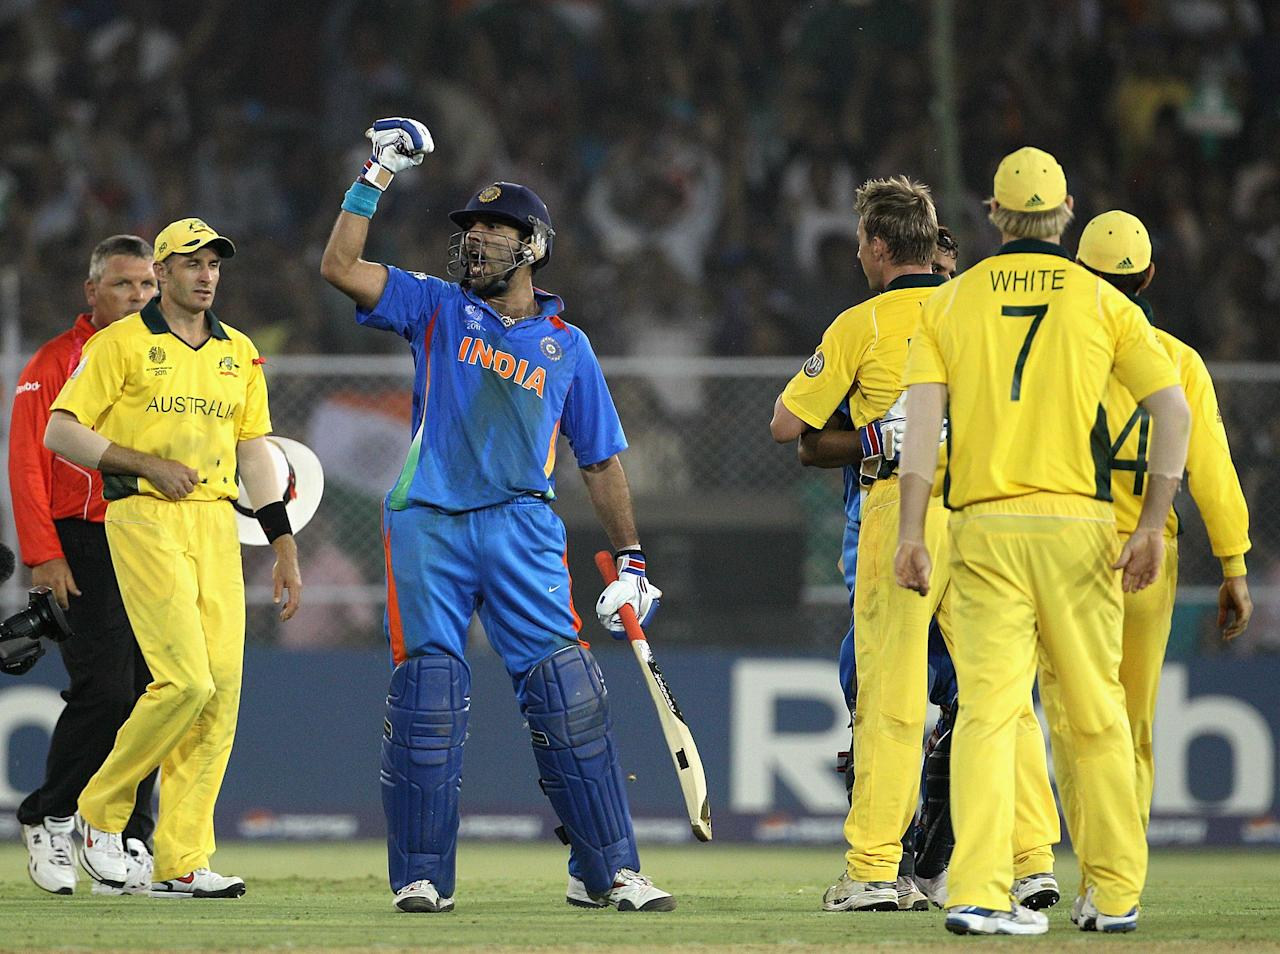 India vs Australia (Quarter-final) at Ahmedabad on 24 March 2011: Ricky Ponting scored 104, his first century in international cricket in over a year, in his last innings as full-time Australia captain and anchored the innings as he helped his team get through a middle-order slump as the three-time defending champions set India a target of 261.   India lost Virender Sehwag early in their run chase, but Gautam Gambhir (50) ensured panic wouldn't sent in the dressing room with his calm approach in the middle as well as useful partnerships with Sachin Tendulkar and Virat Kohli. When captain MS Dhoni was dismissed by Brett Lee, India still needed 74 runs to win in just over 12 overs. Yuvraj continued his good form with the bat and remained unbeaten on 57 from 65 deliveries, while Suresh Raina (34*) put the exclamation mark on an easy victory in the end as India overhauled the target in the 48th over to end Australia's domination of the World Cup.